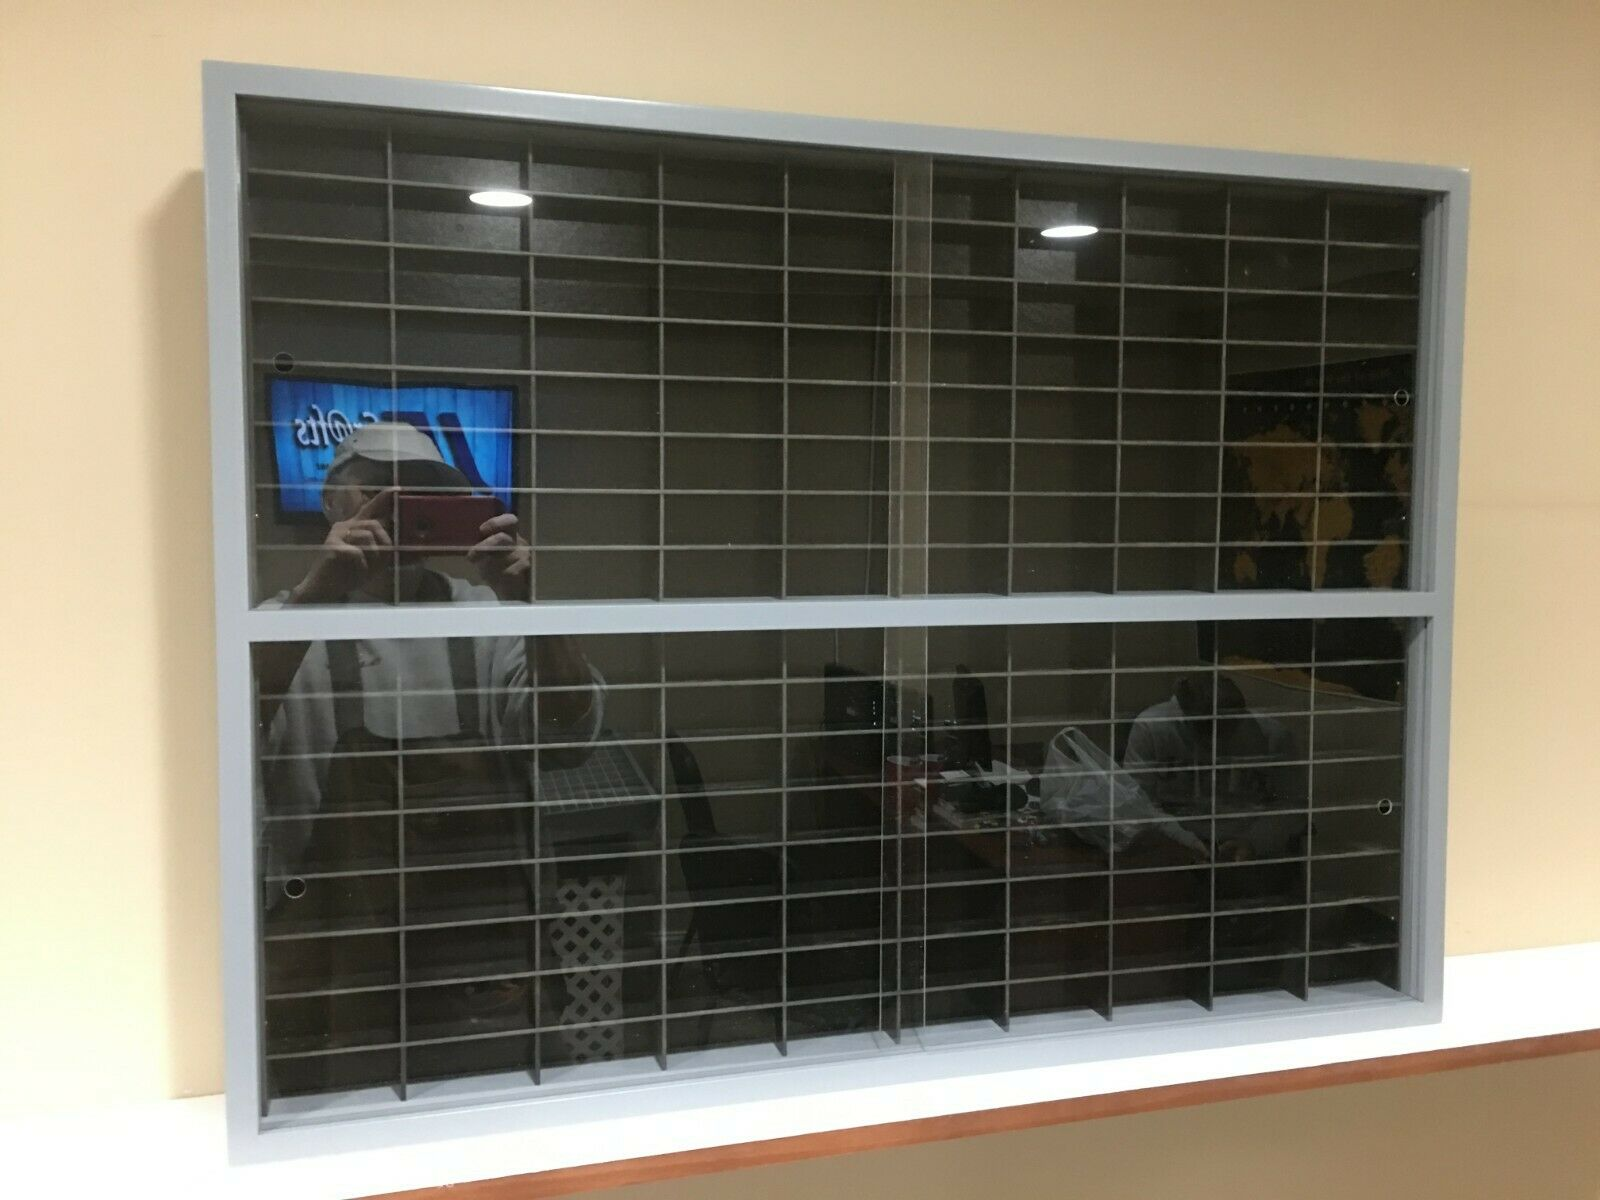 Display case cabinet for 1 64 diecast scale cars (hot wheels, matchbox) 160NGB-5